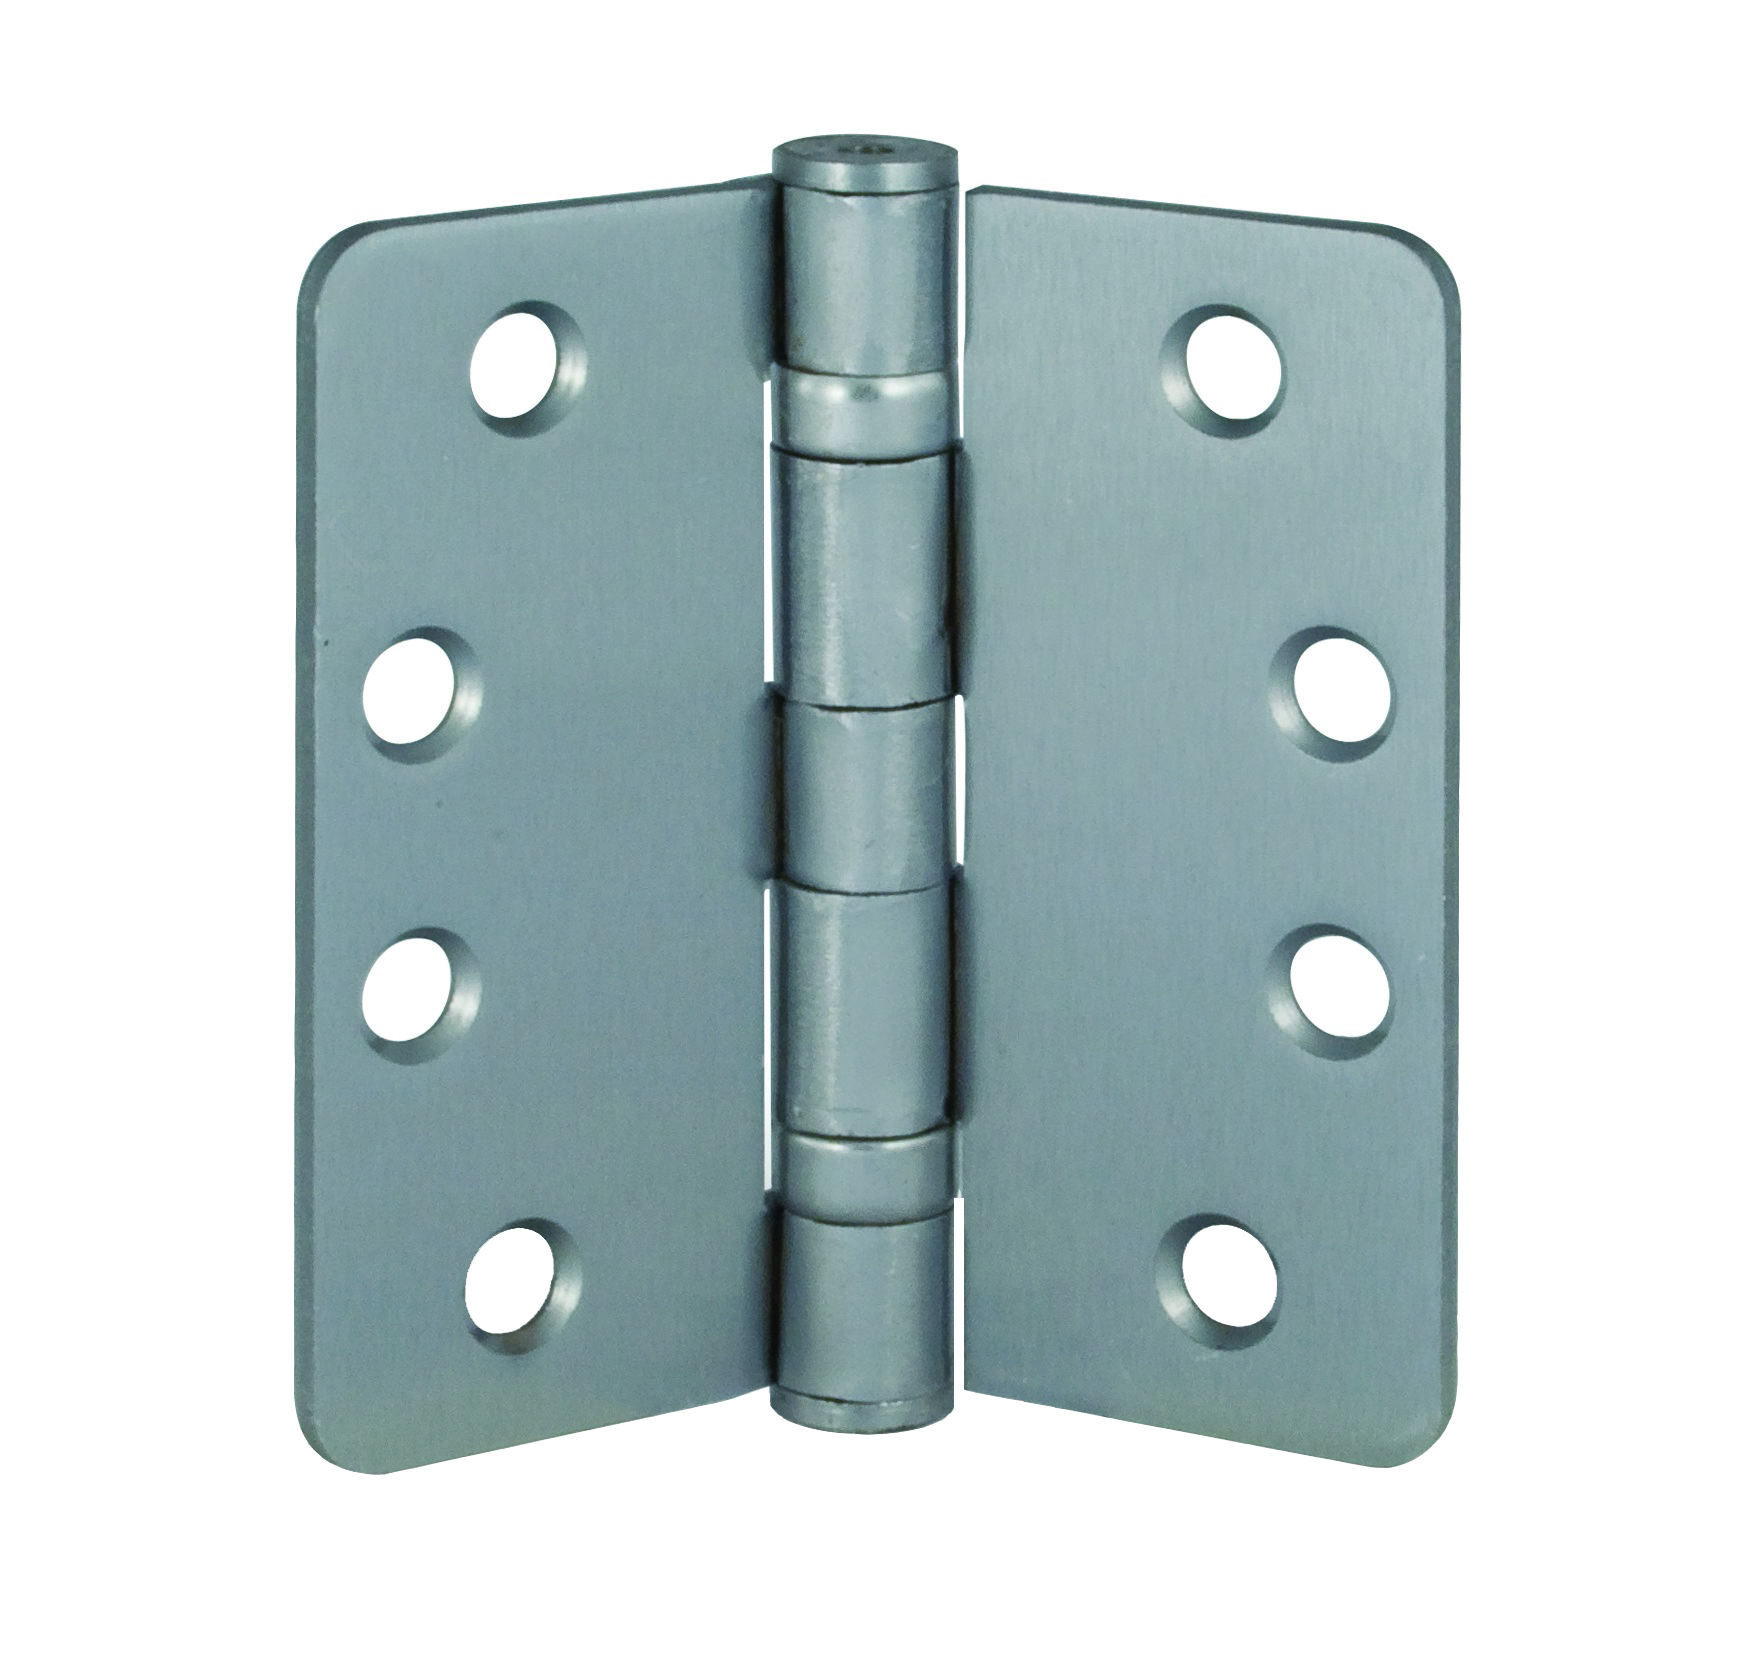 4″ x 1/4″ R Ball Bearing Hinge